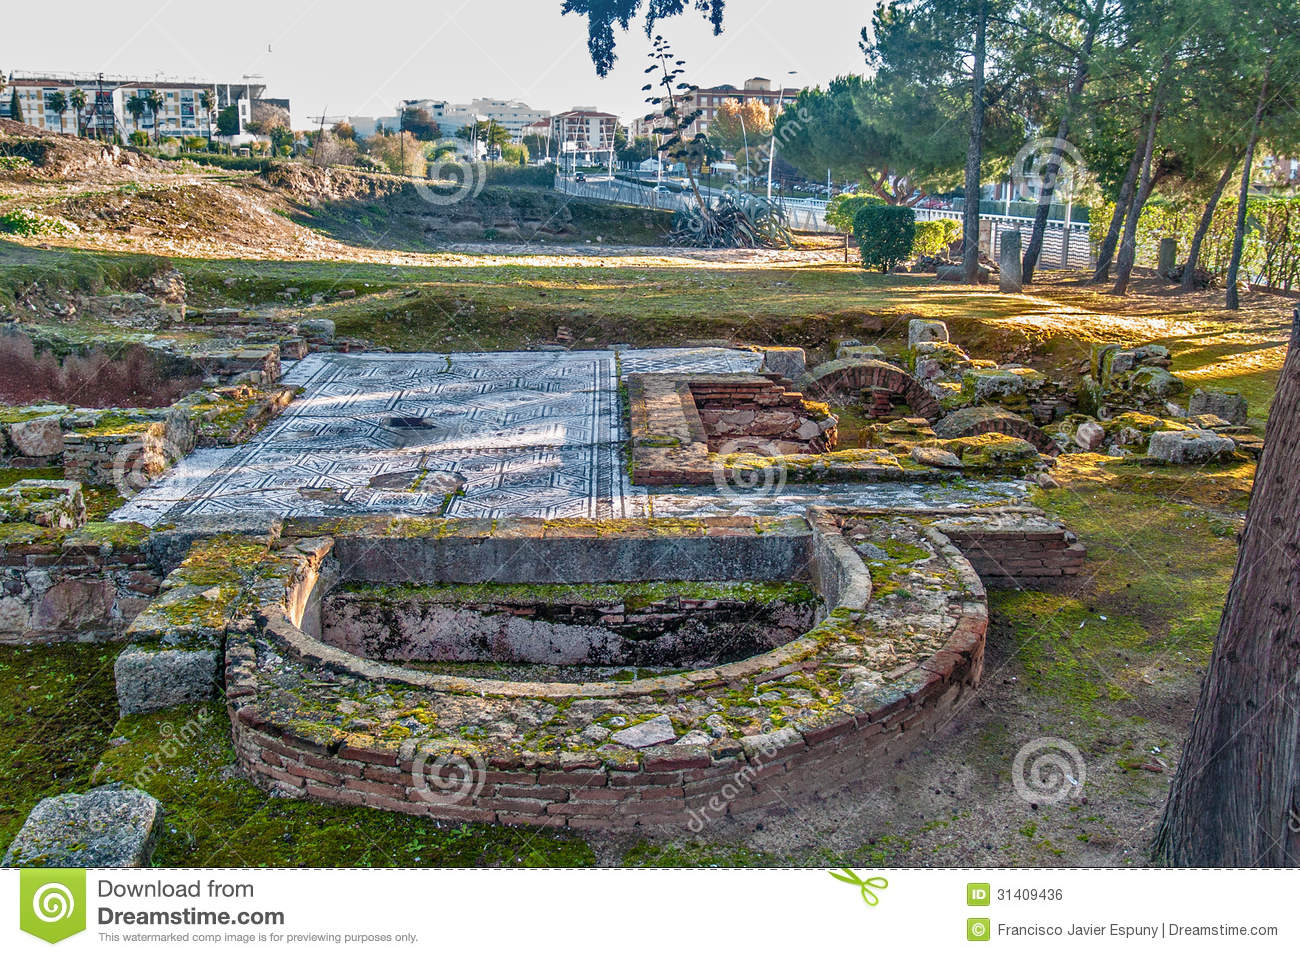 Download Roman House Archeological Site 2 Stock Photo - Image of civilization, building: 31409436